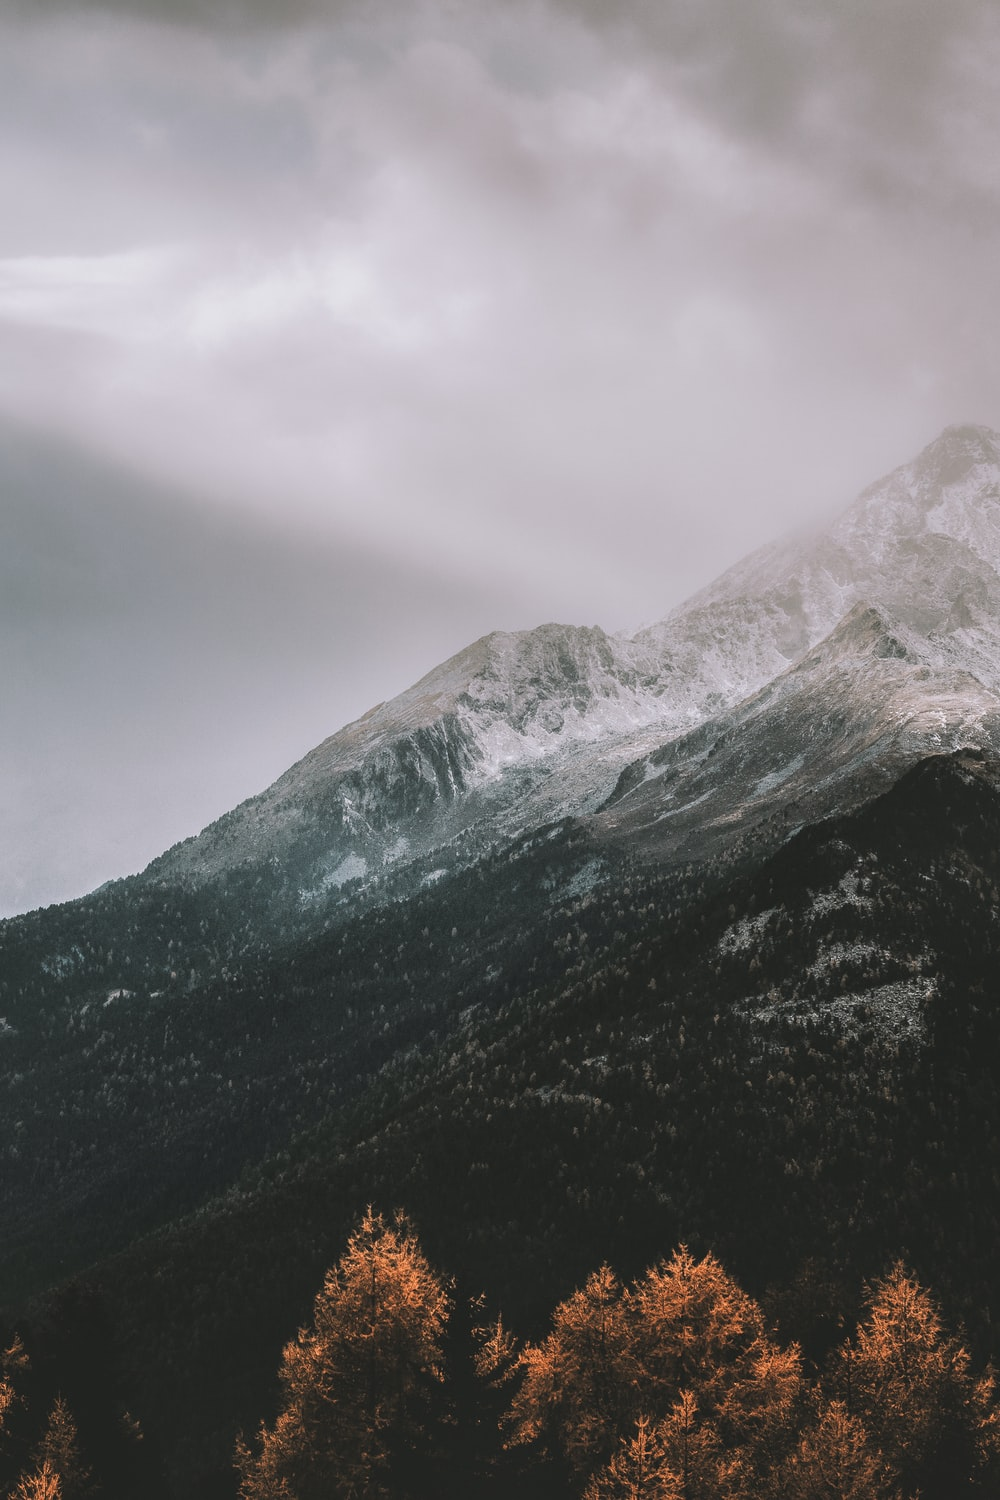 mountain covered by snow during daytime